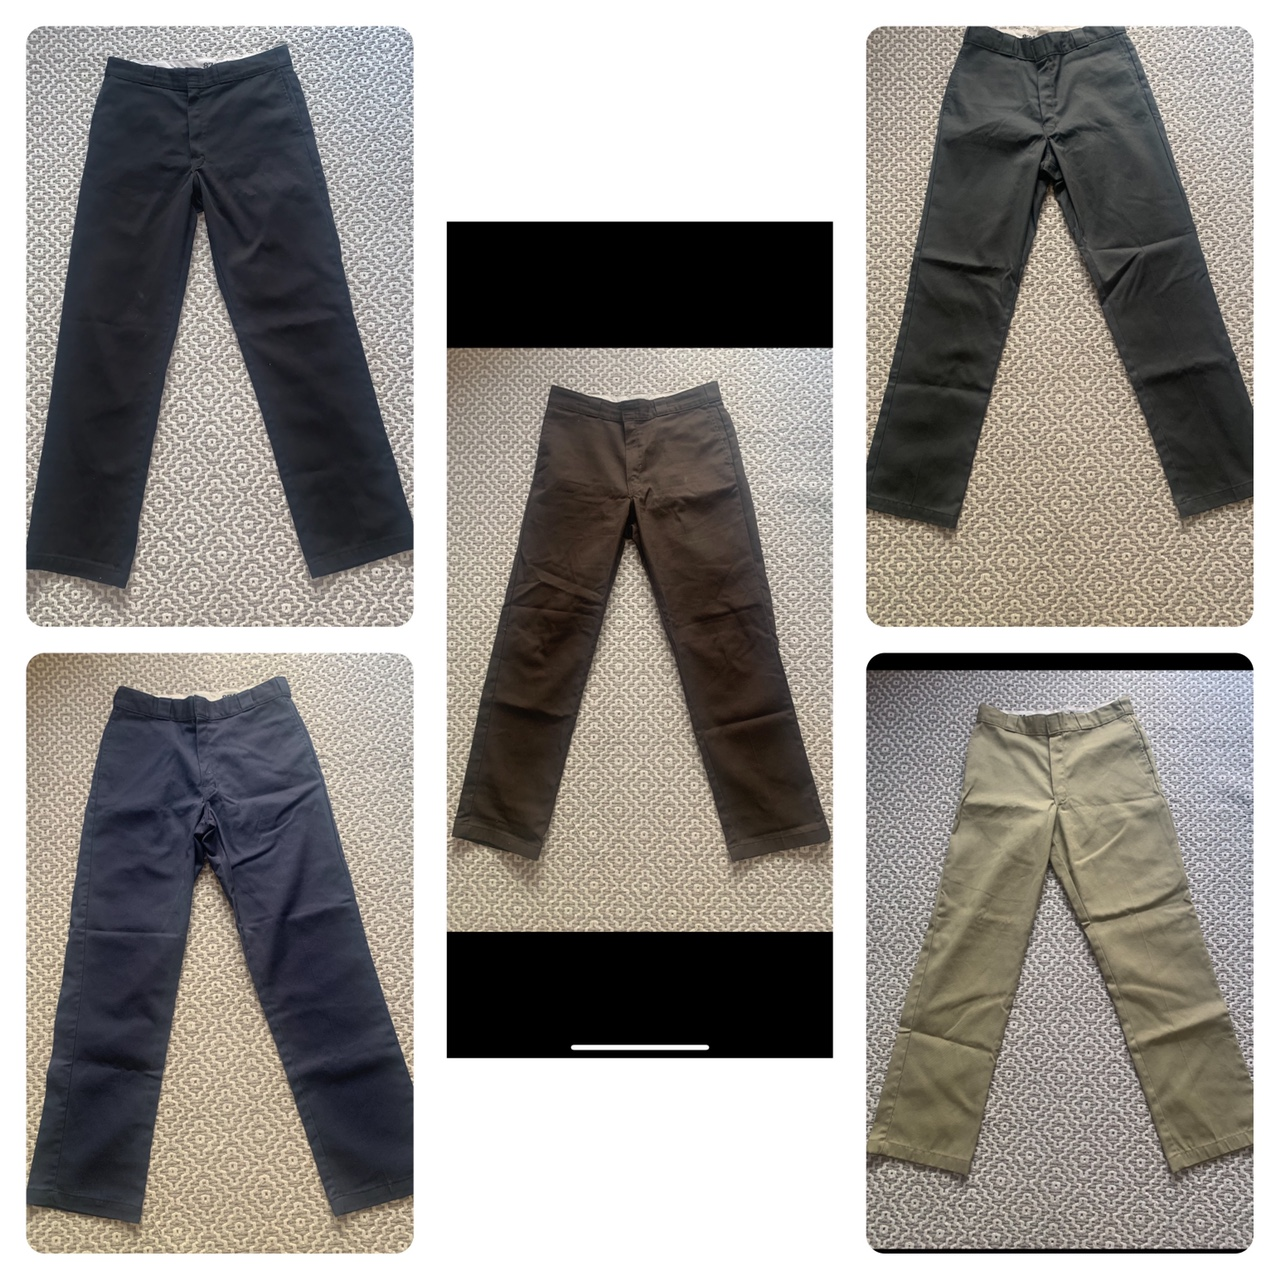 Product Image 1 - Message before buying!!! **DICKIES*** Bundle of 5